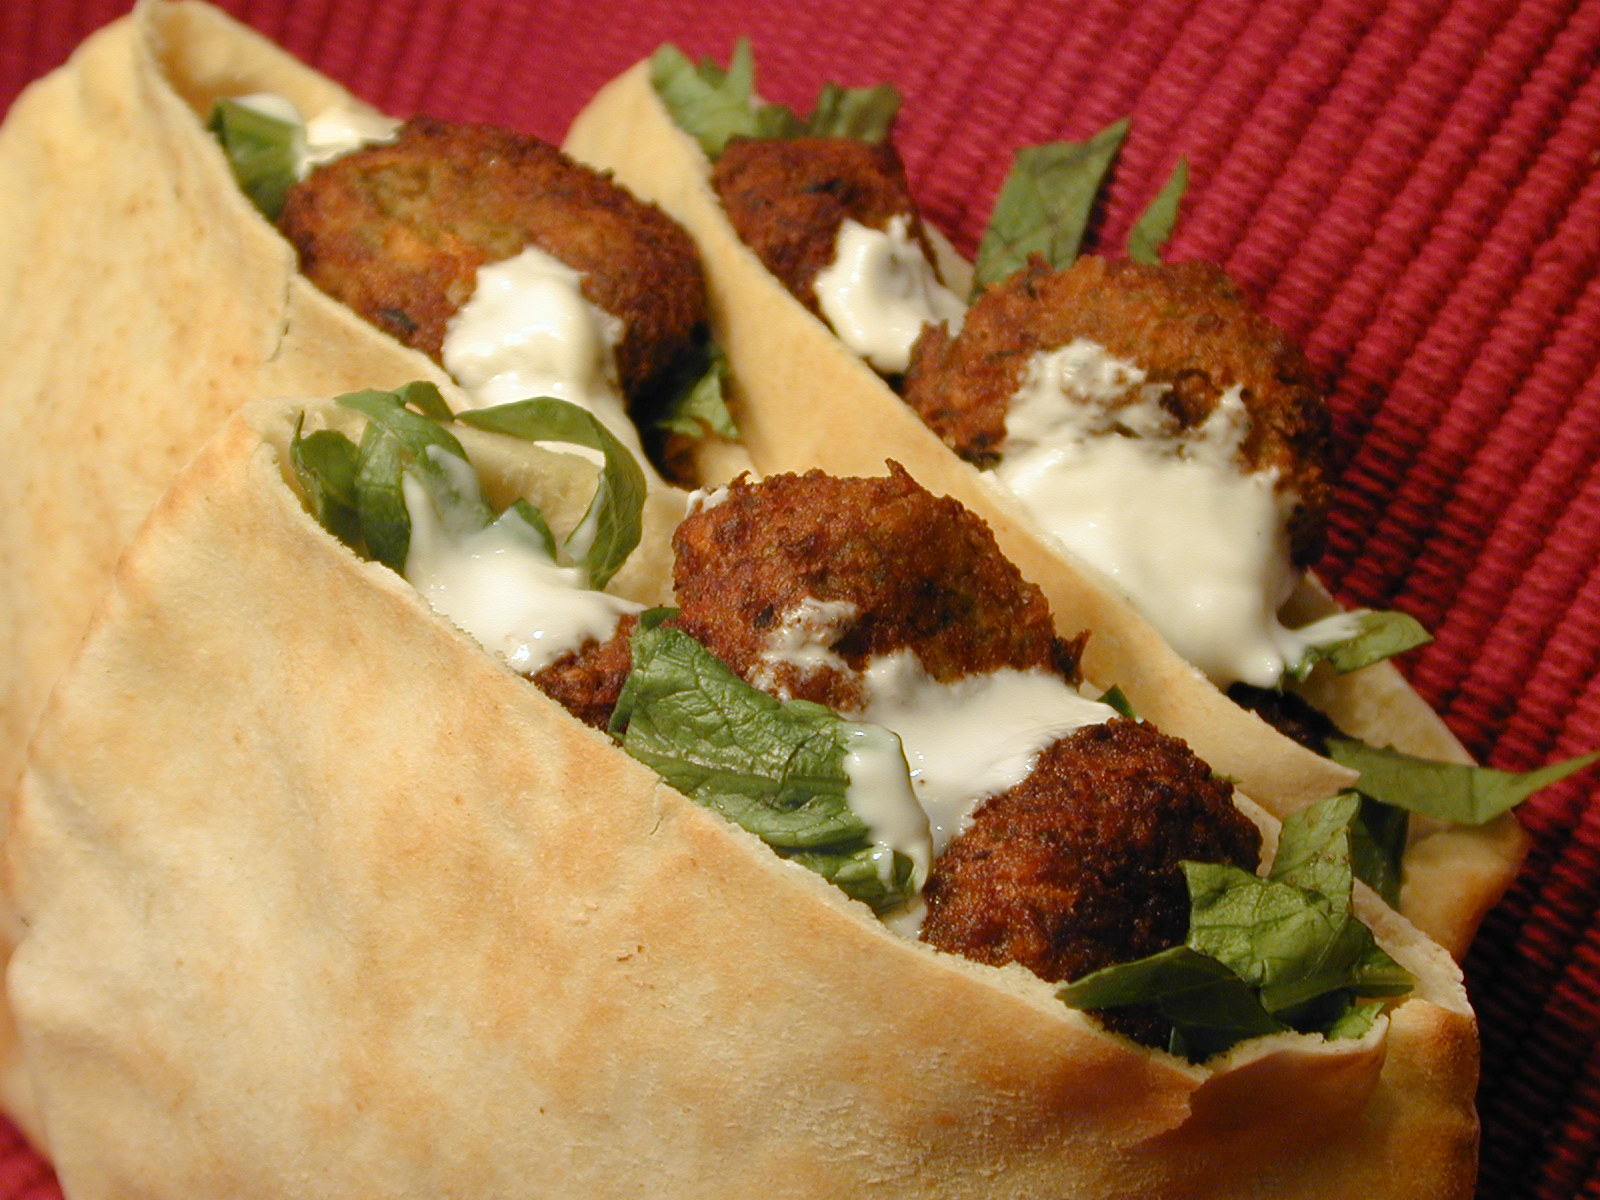 Falafel on pita bread